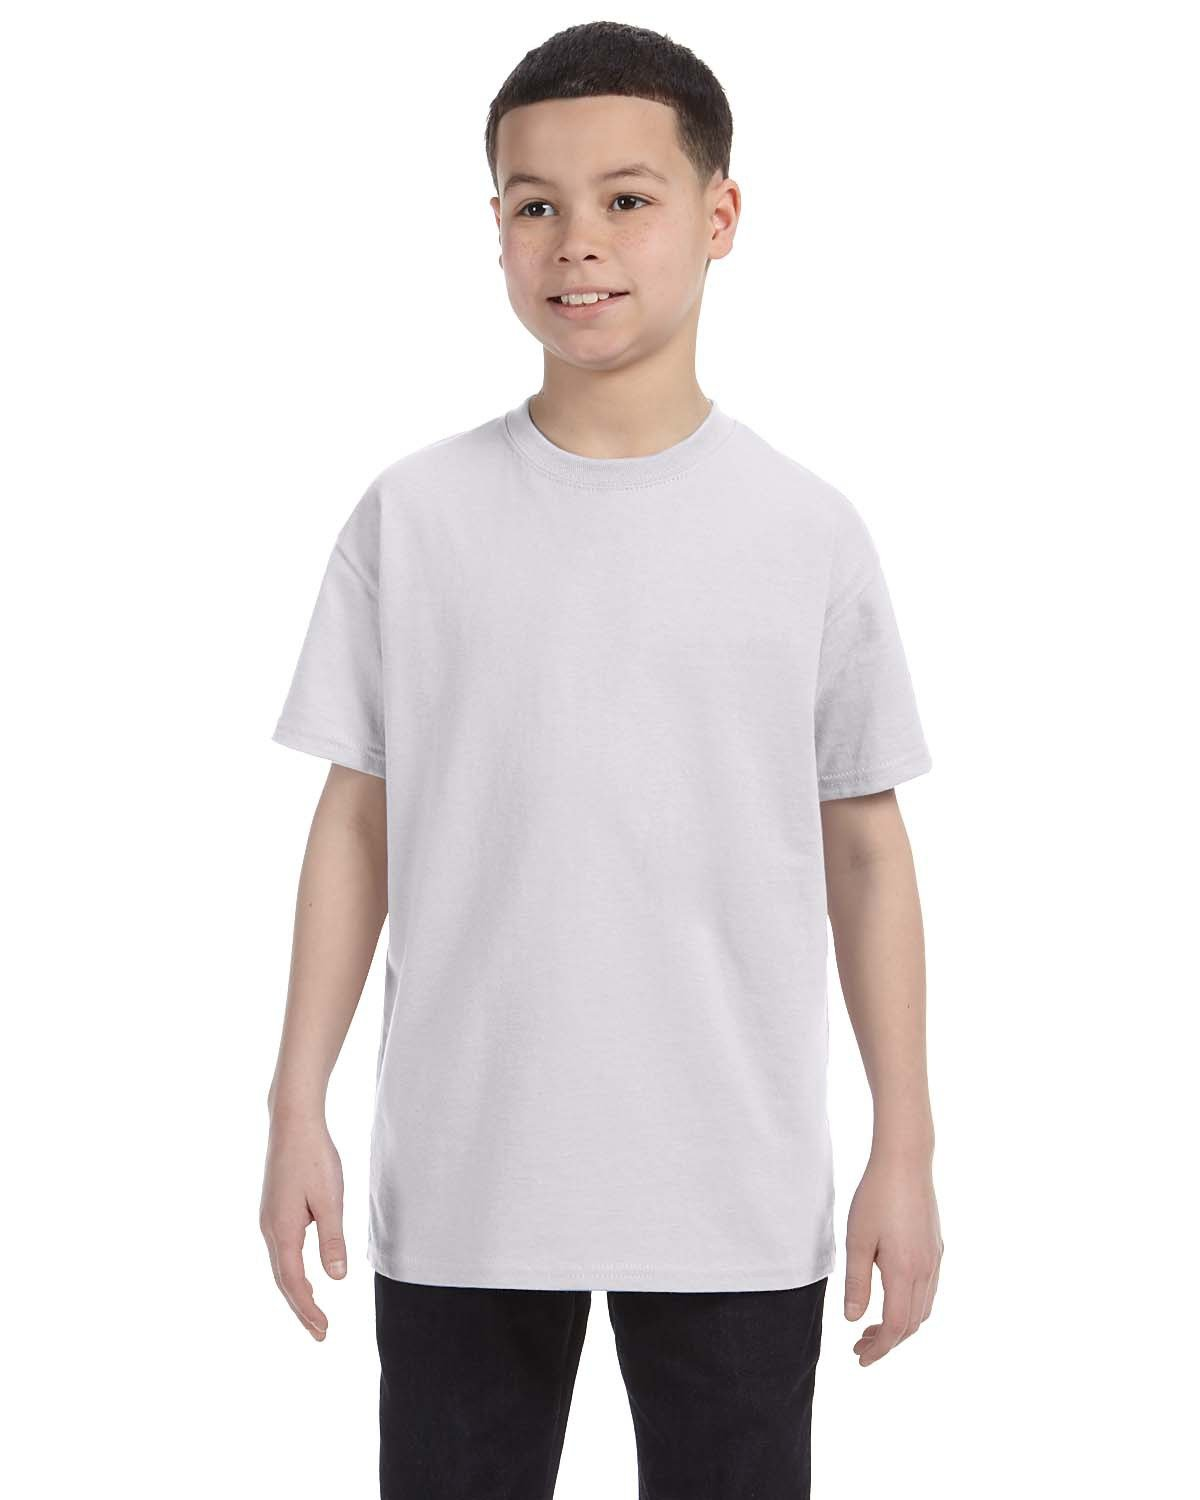 Hanes Youth Authentic-T T-Shirt ASH